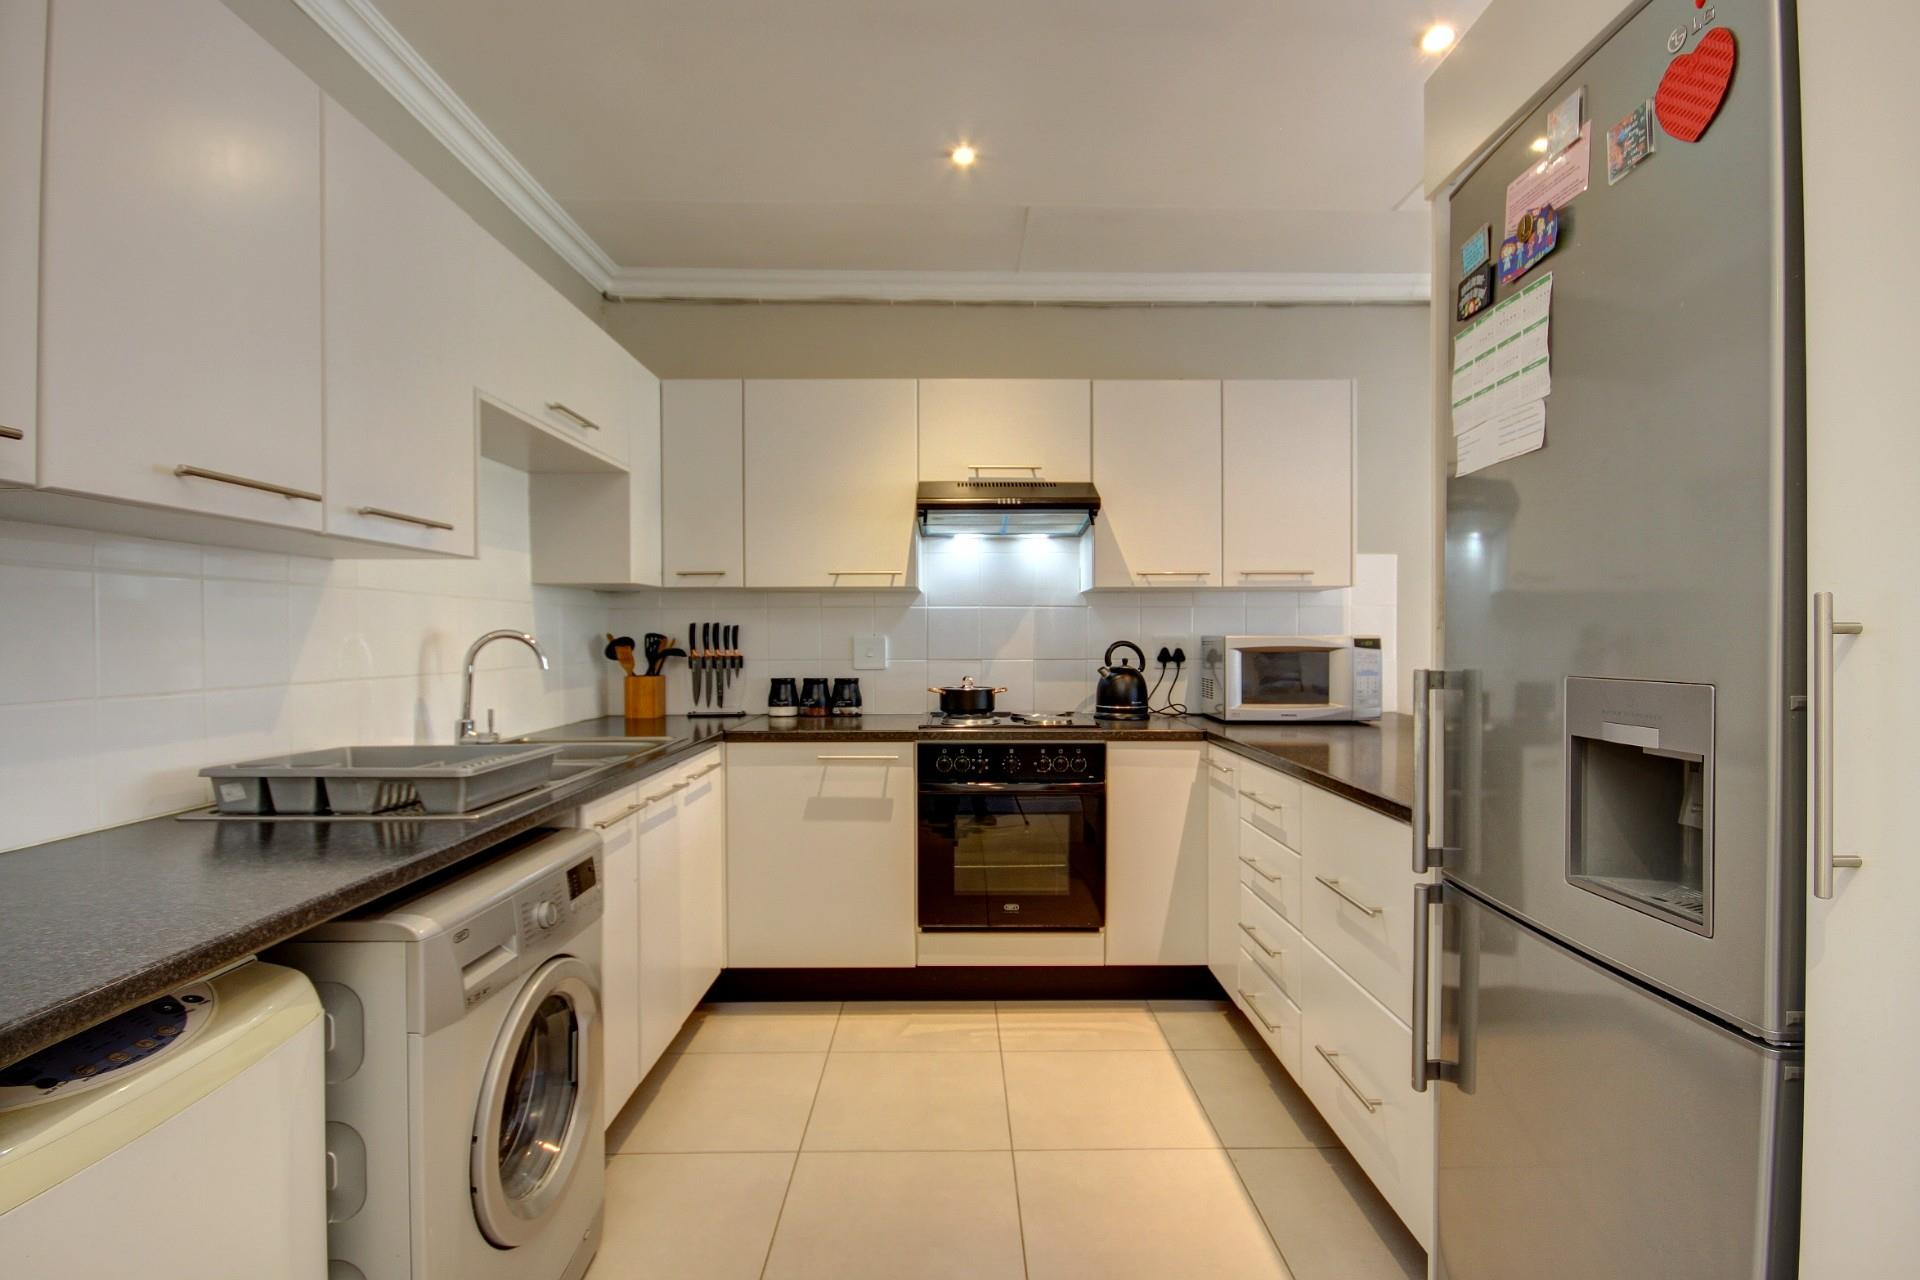 1.5 Bedroom Apartment / Flat For Sale in Ferndale